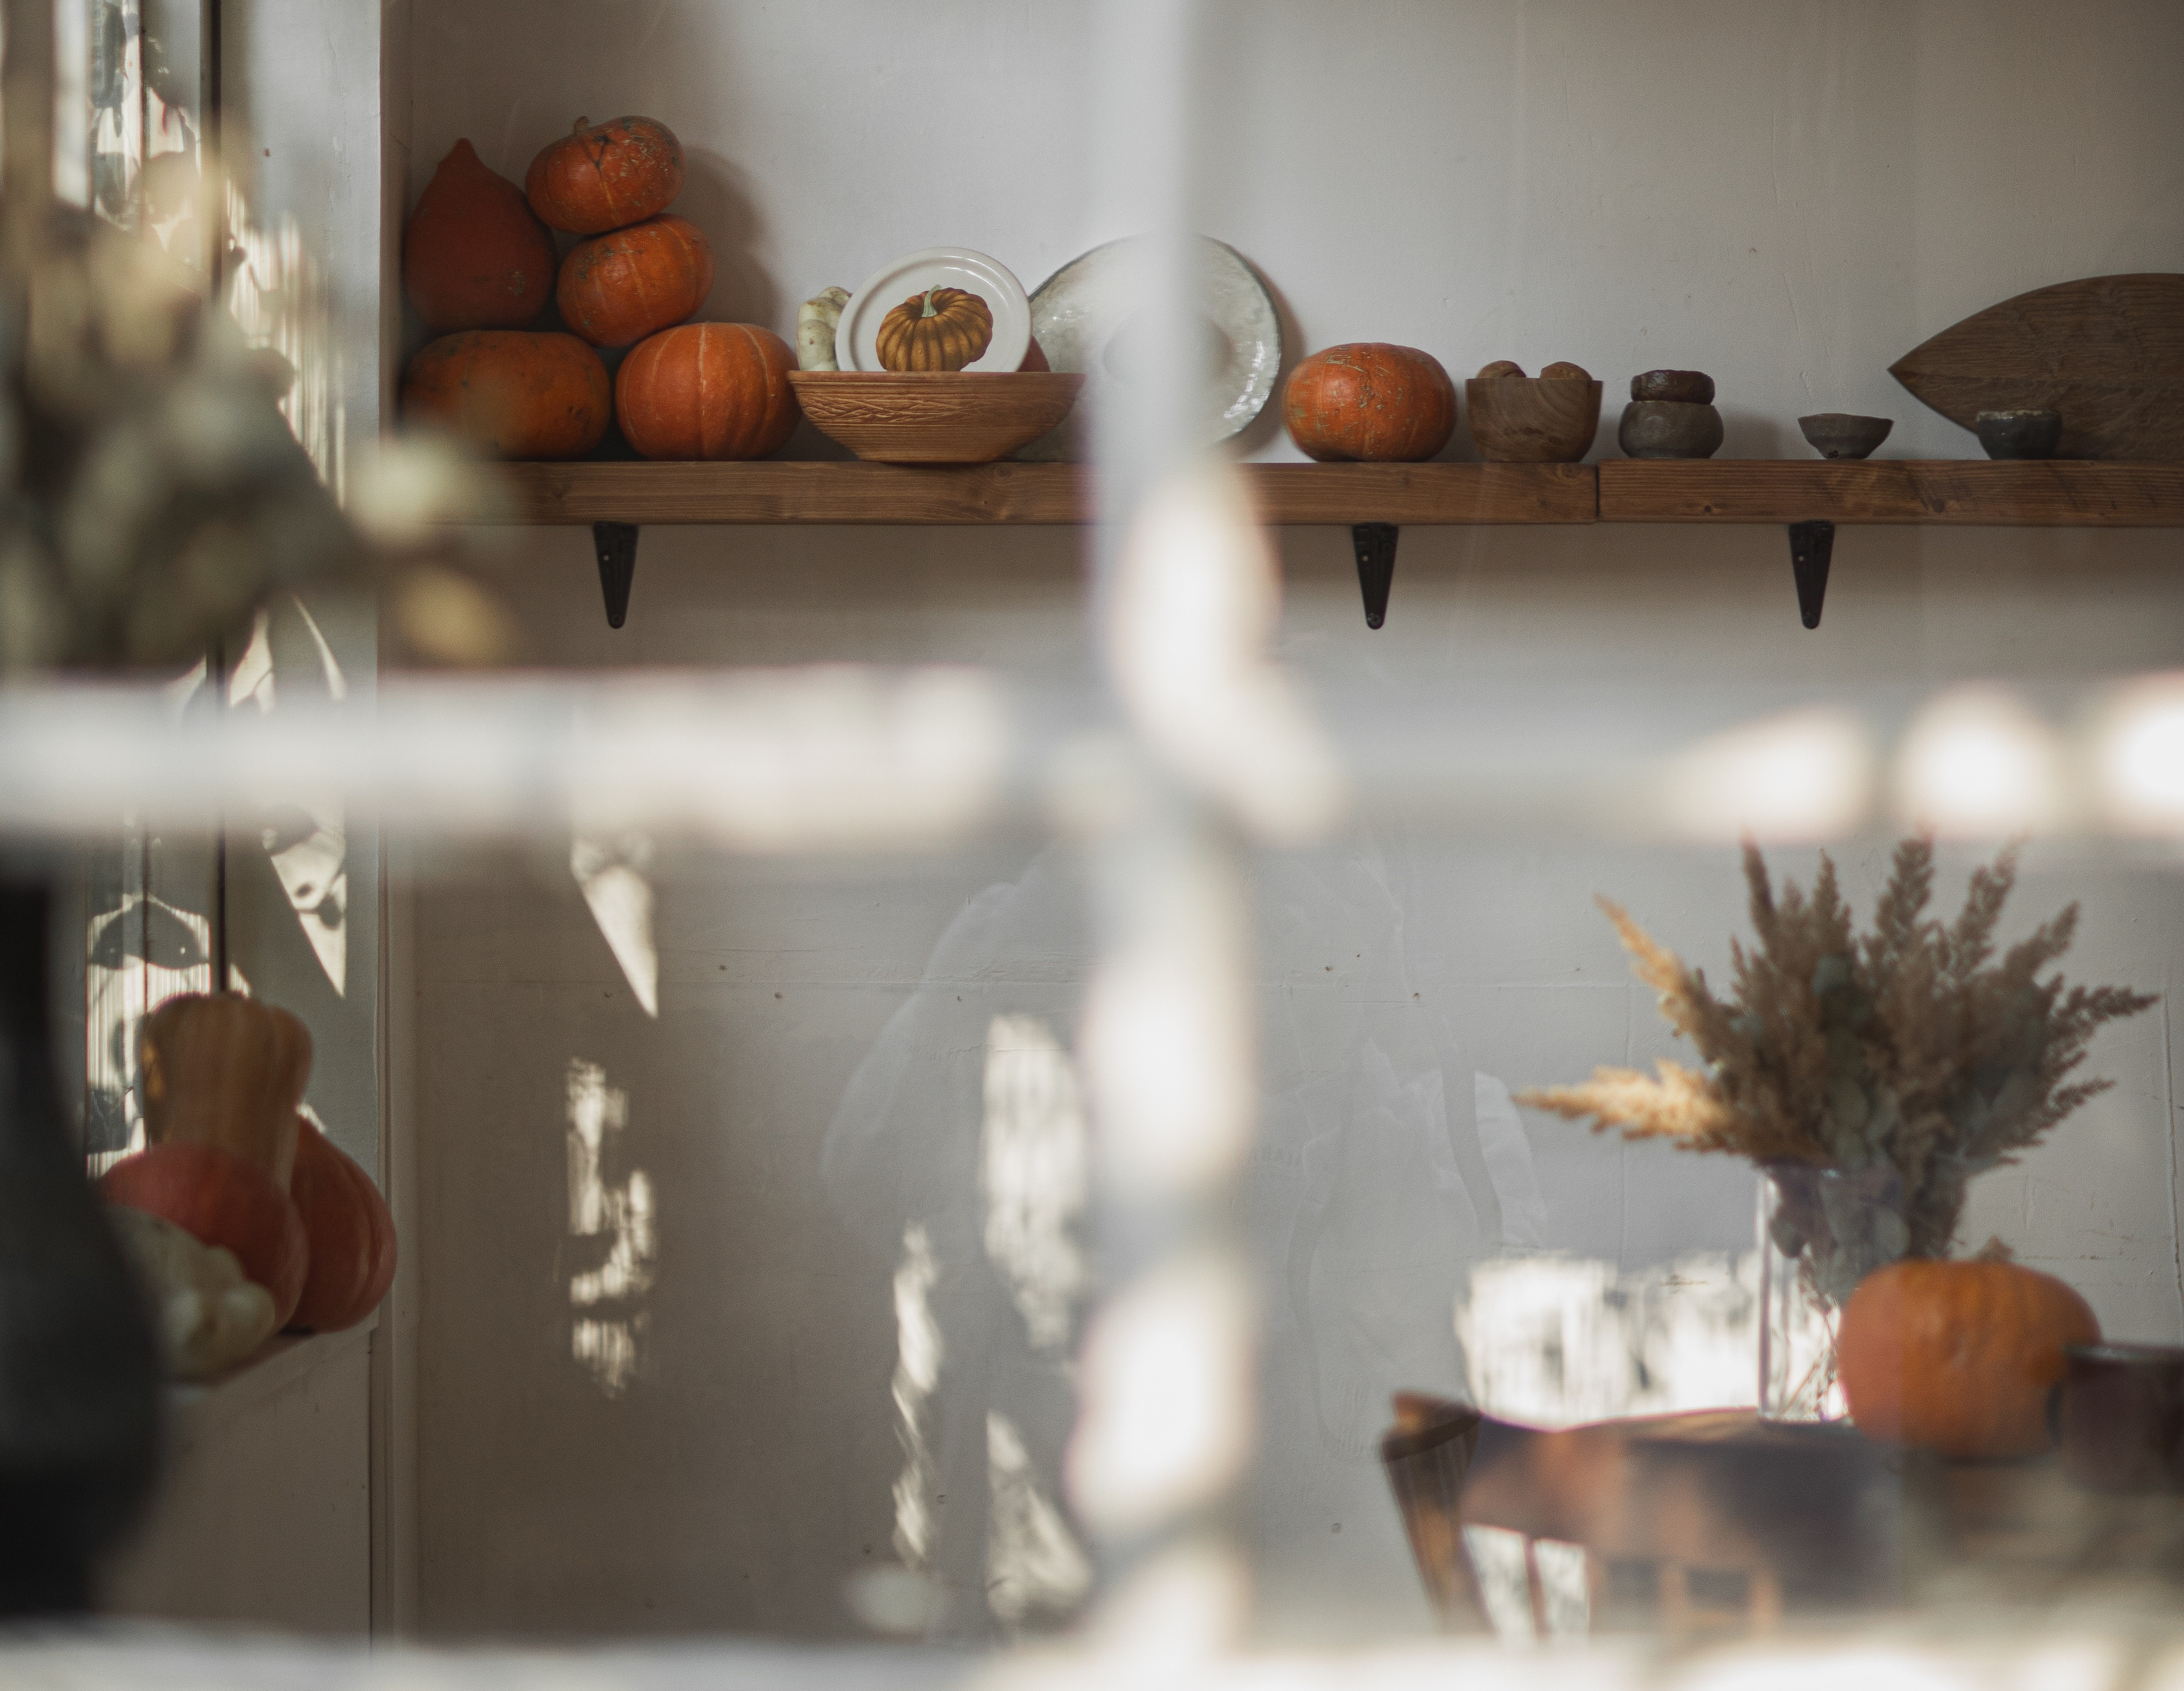 Fall kitchen counter decorations pumpkins gourds leaves